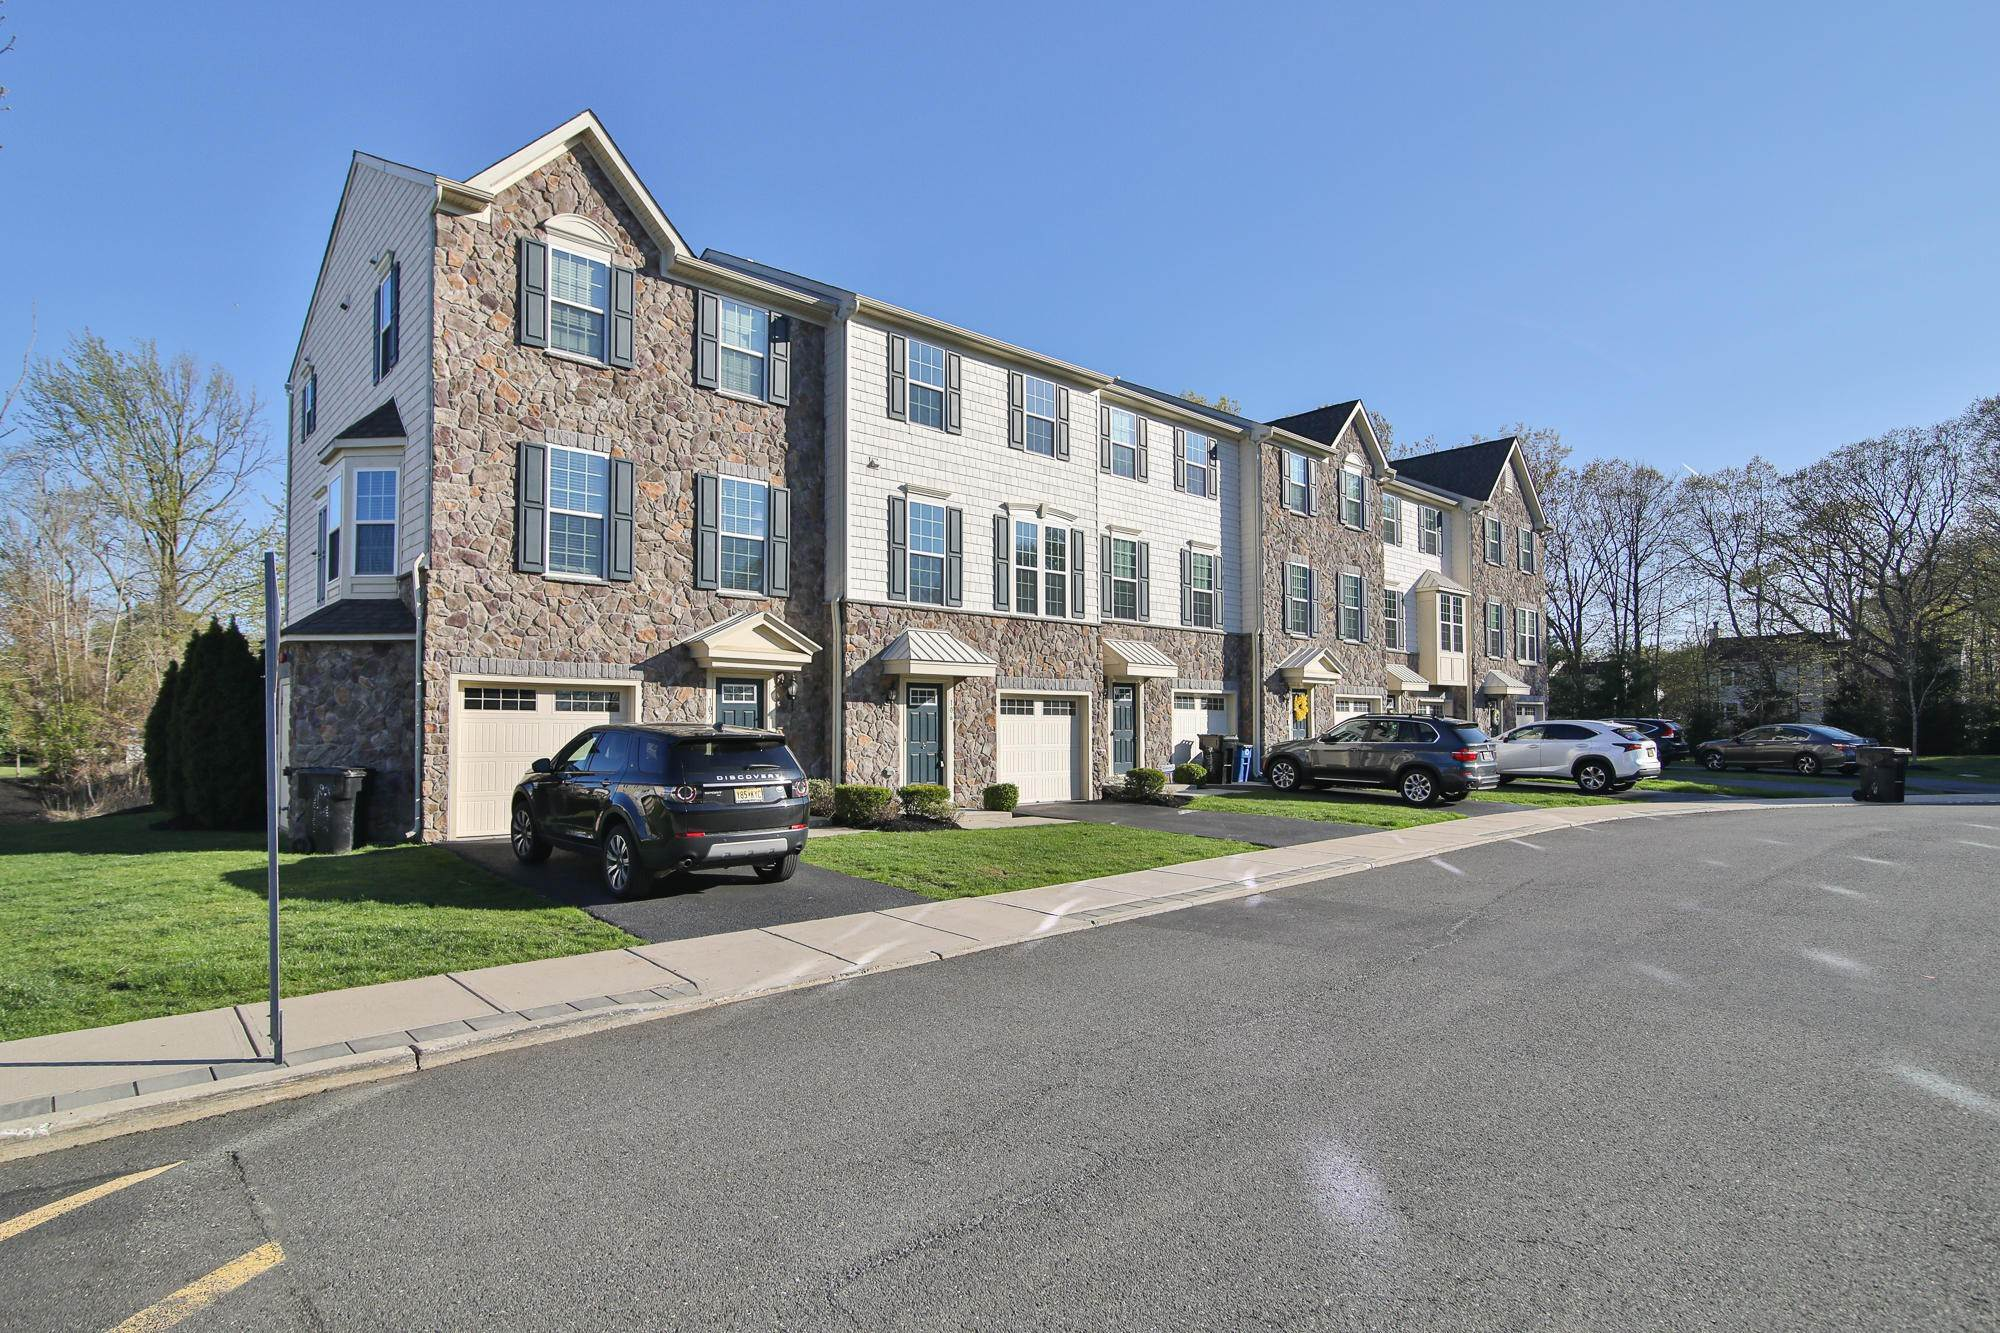 3. Condominiums for Sale at 106 Phillip E Frank Way Cliffwood, New Jersey 07721 United States